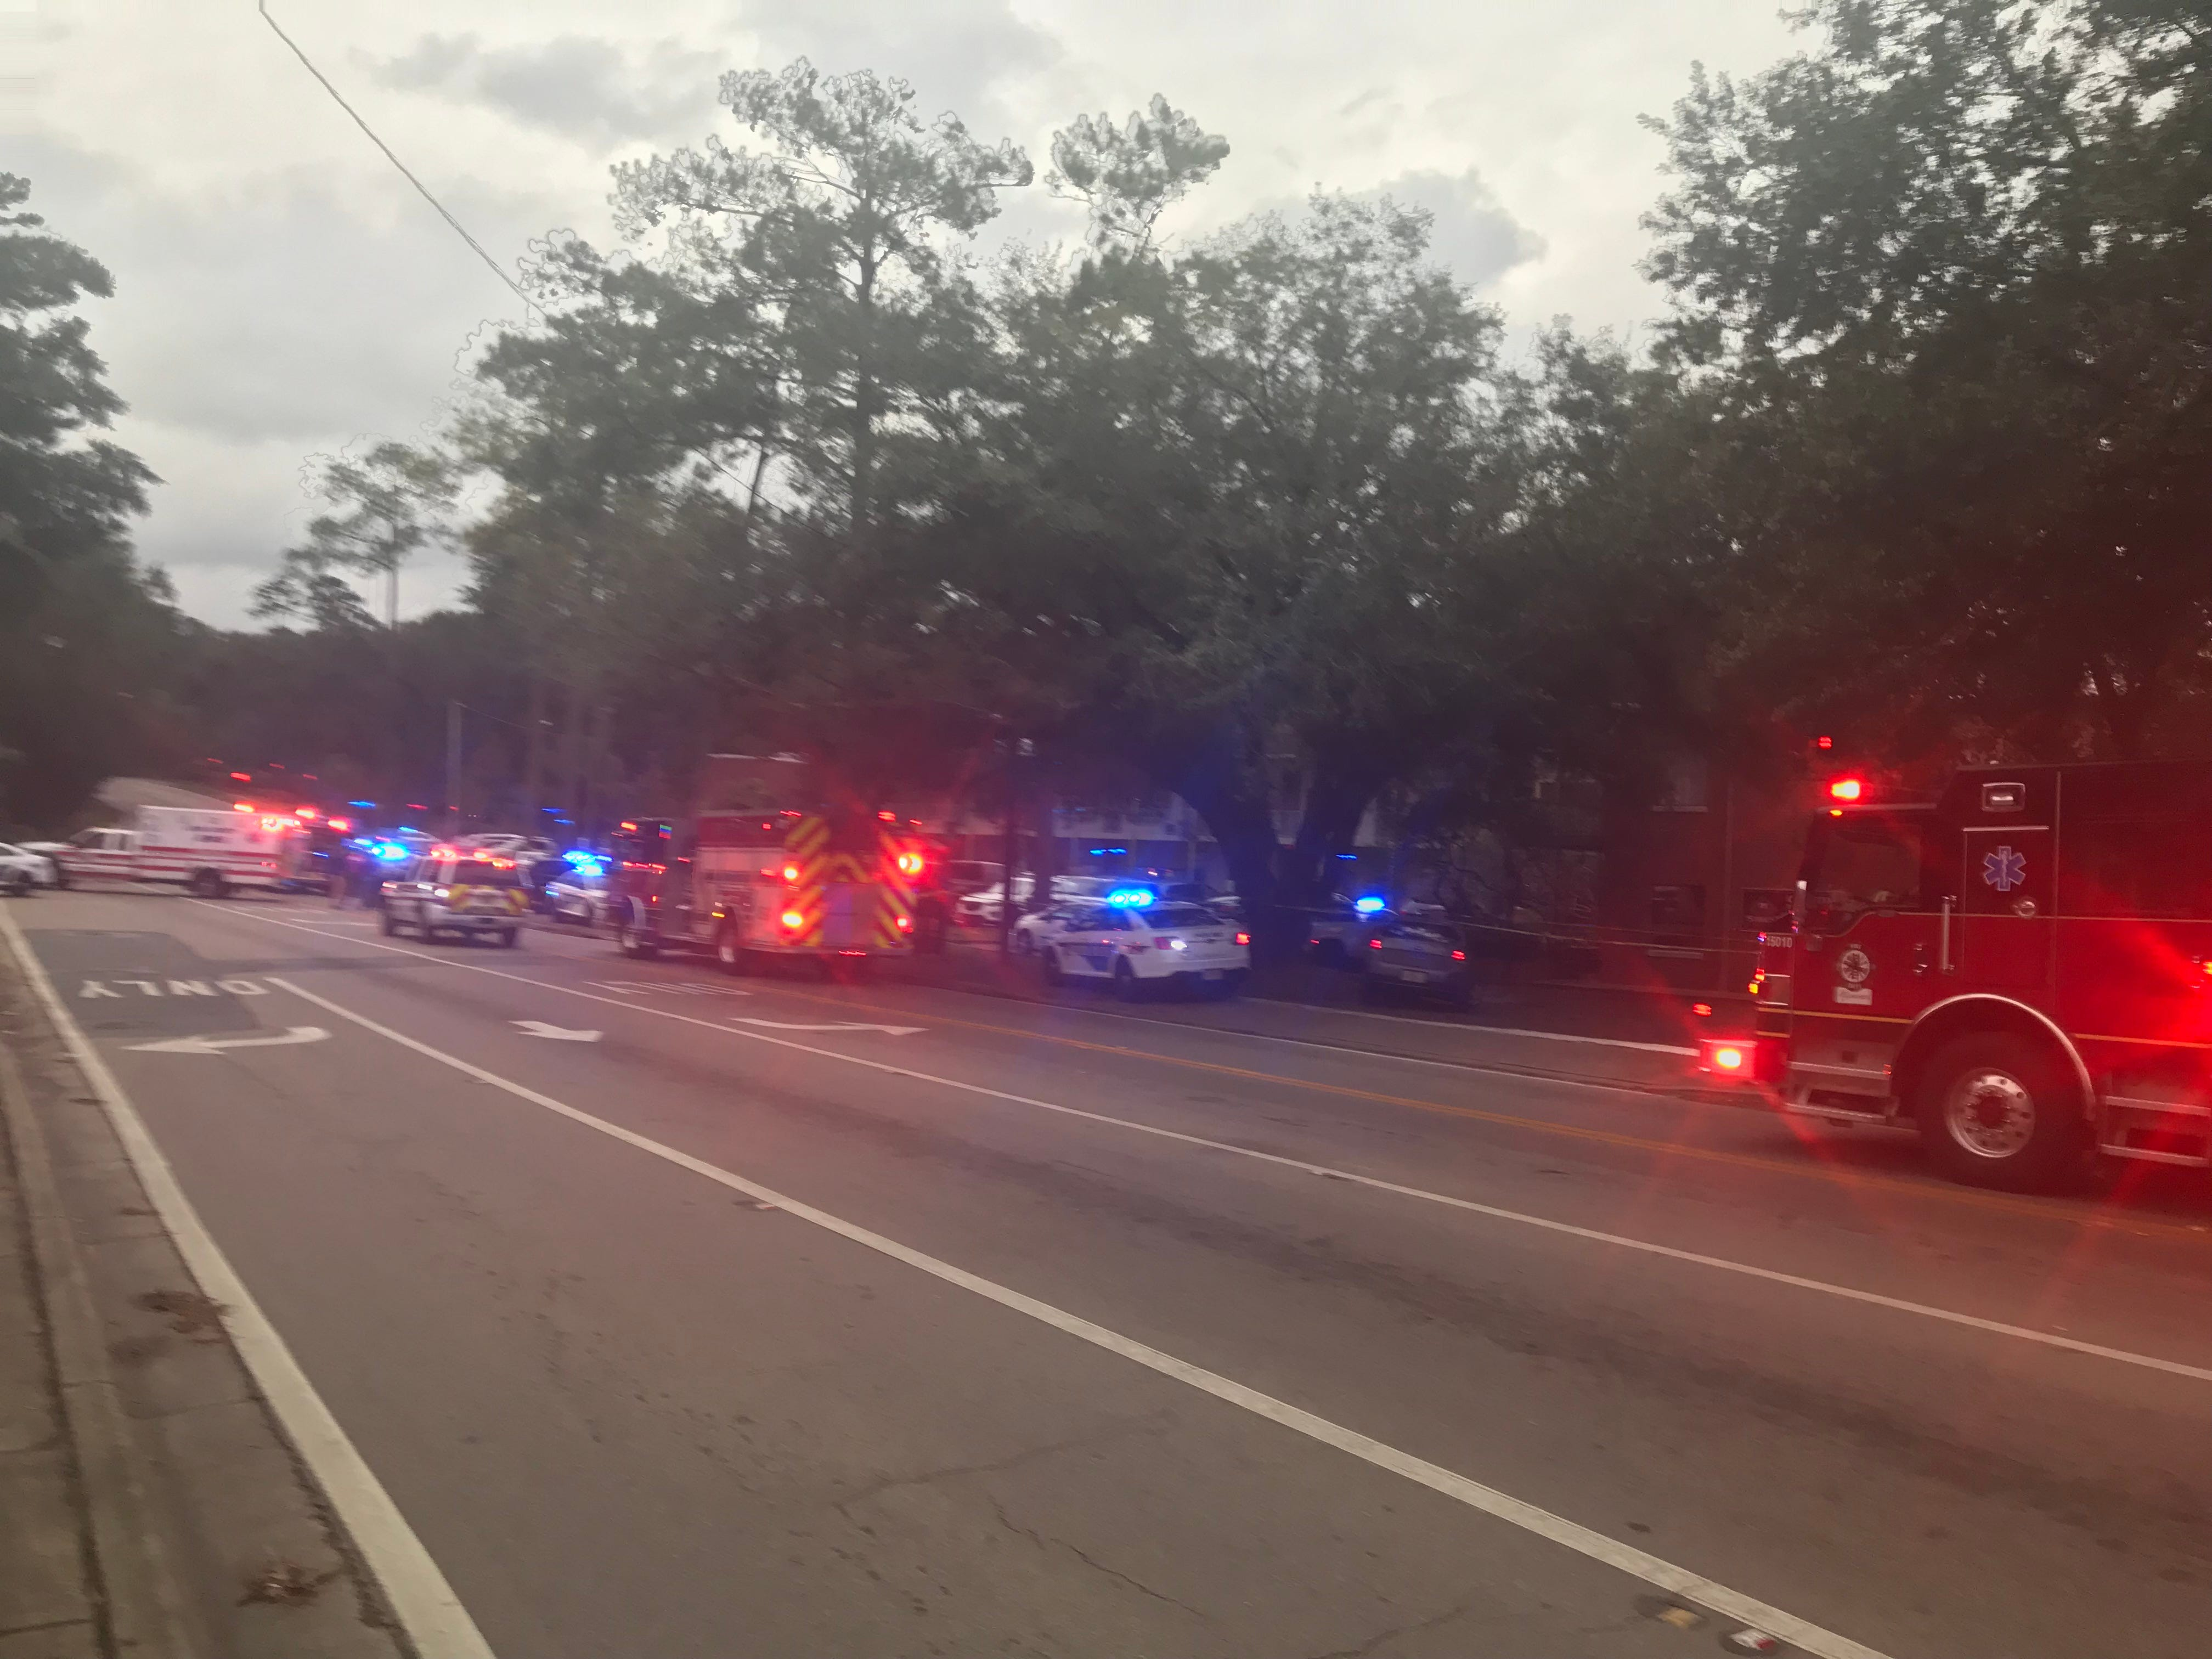 At least 2 dead, including gunman in shooting at Tallahassee yoga studio, police say